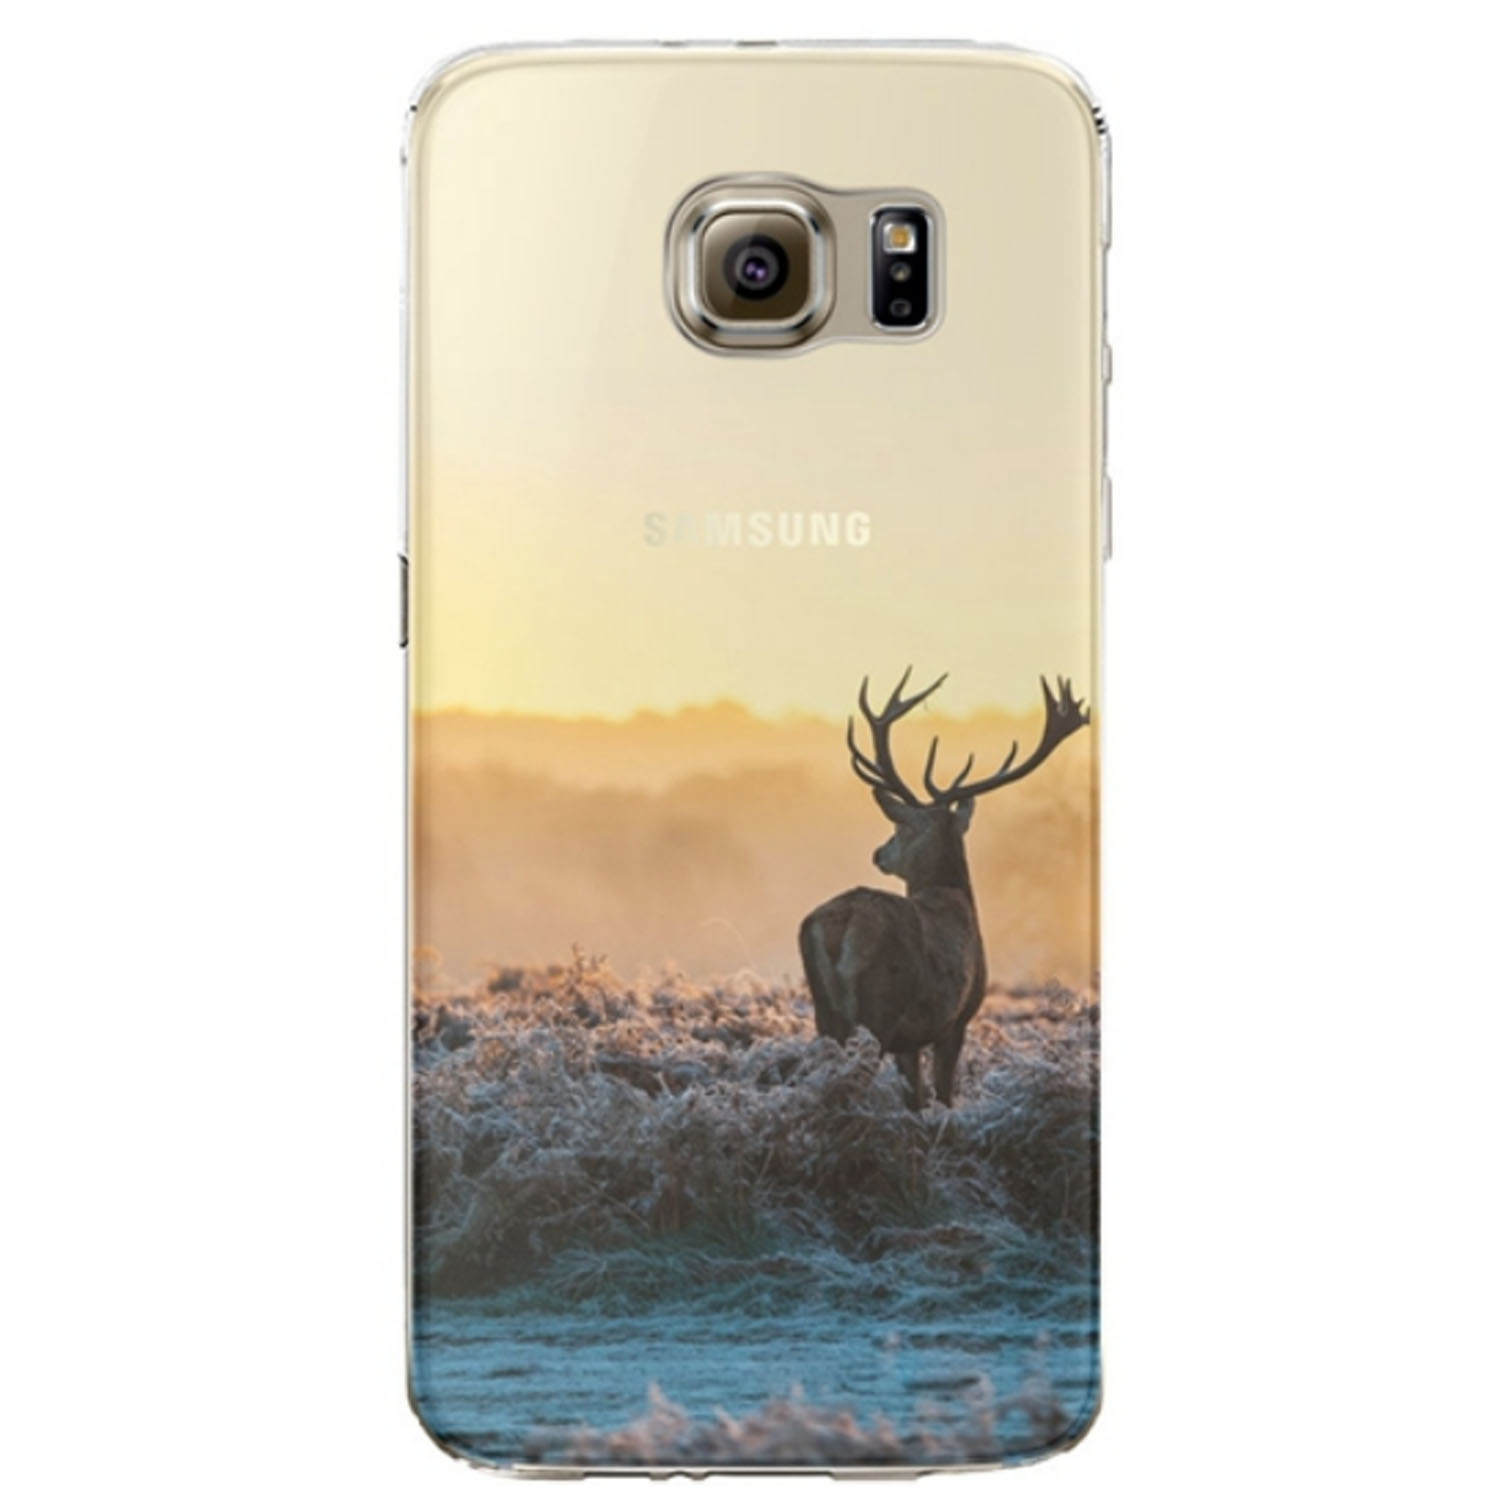 Kritzel Case Collection Galaxy S7 edge - Nature #310